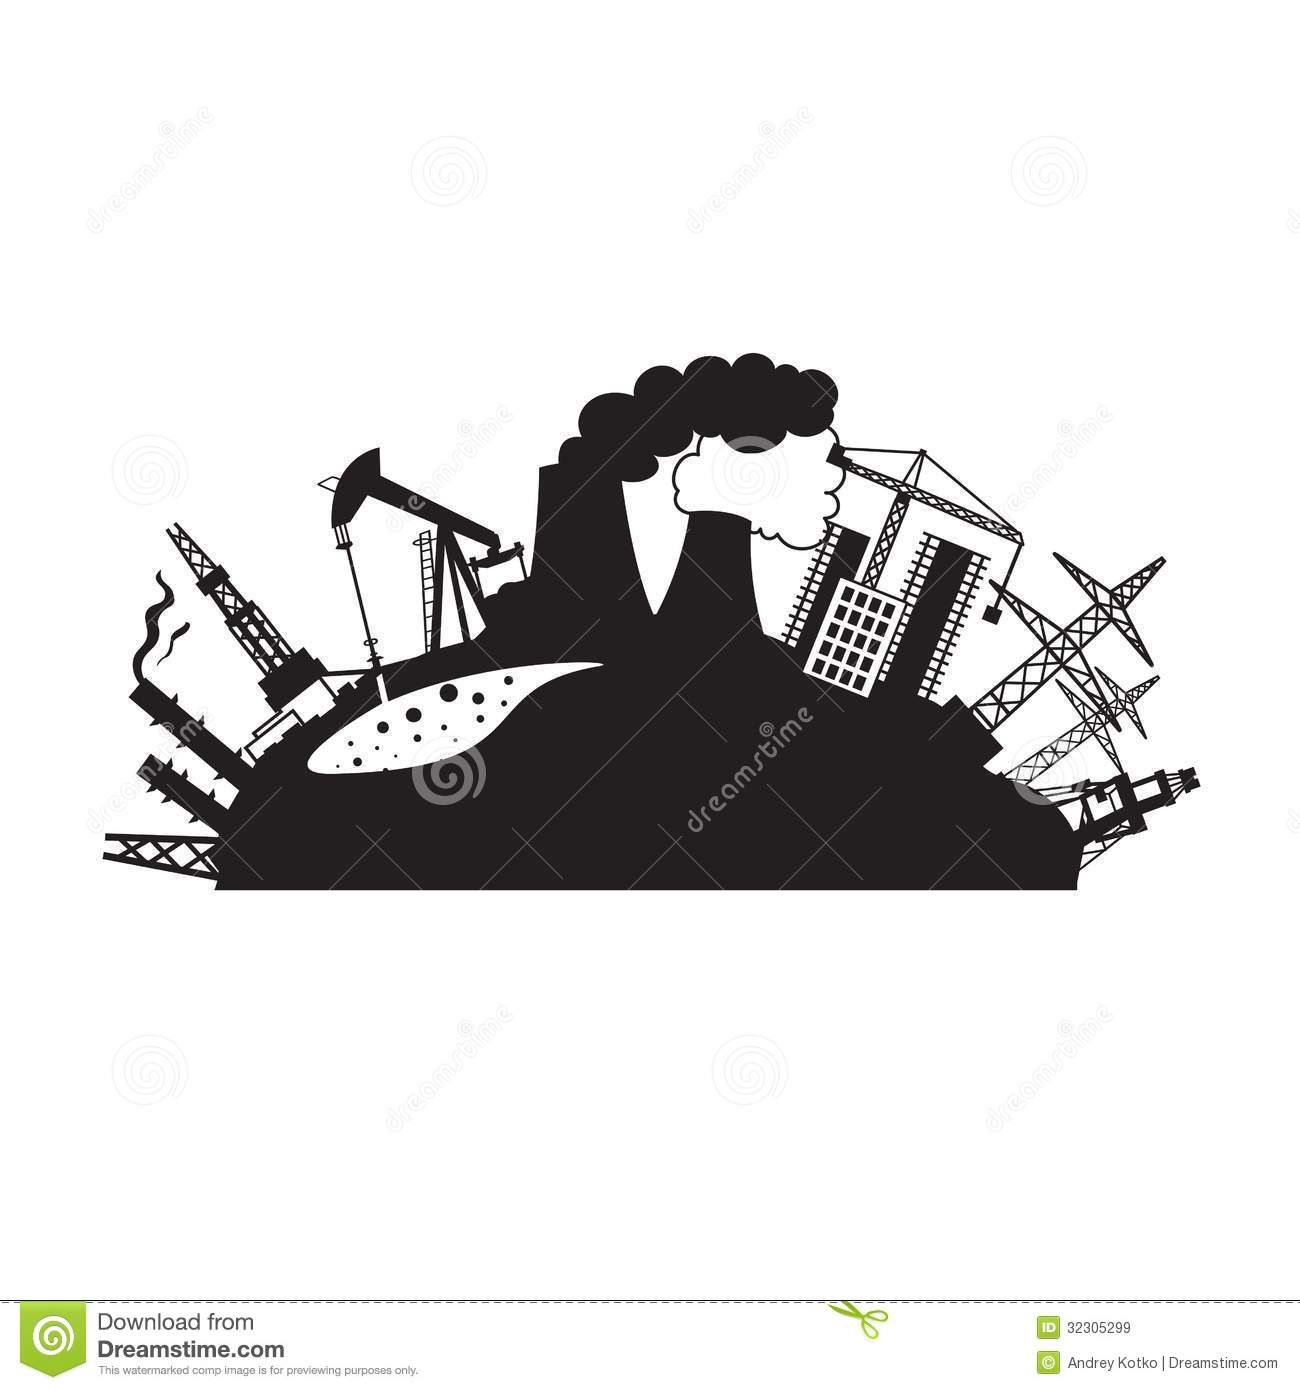 Factory clipart black and white